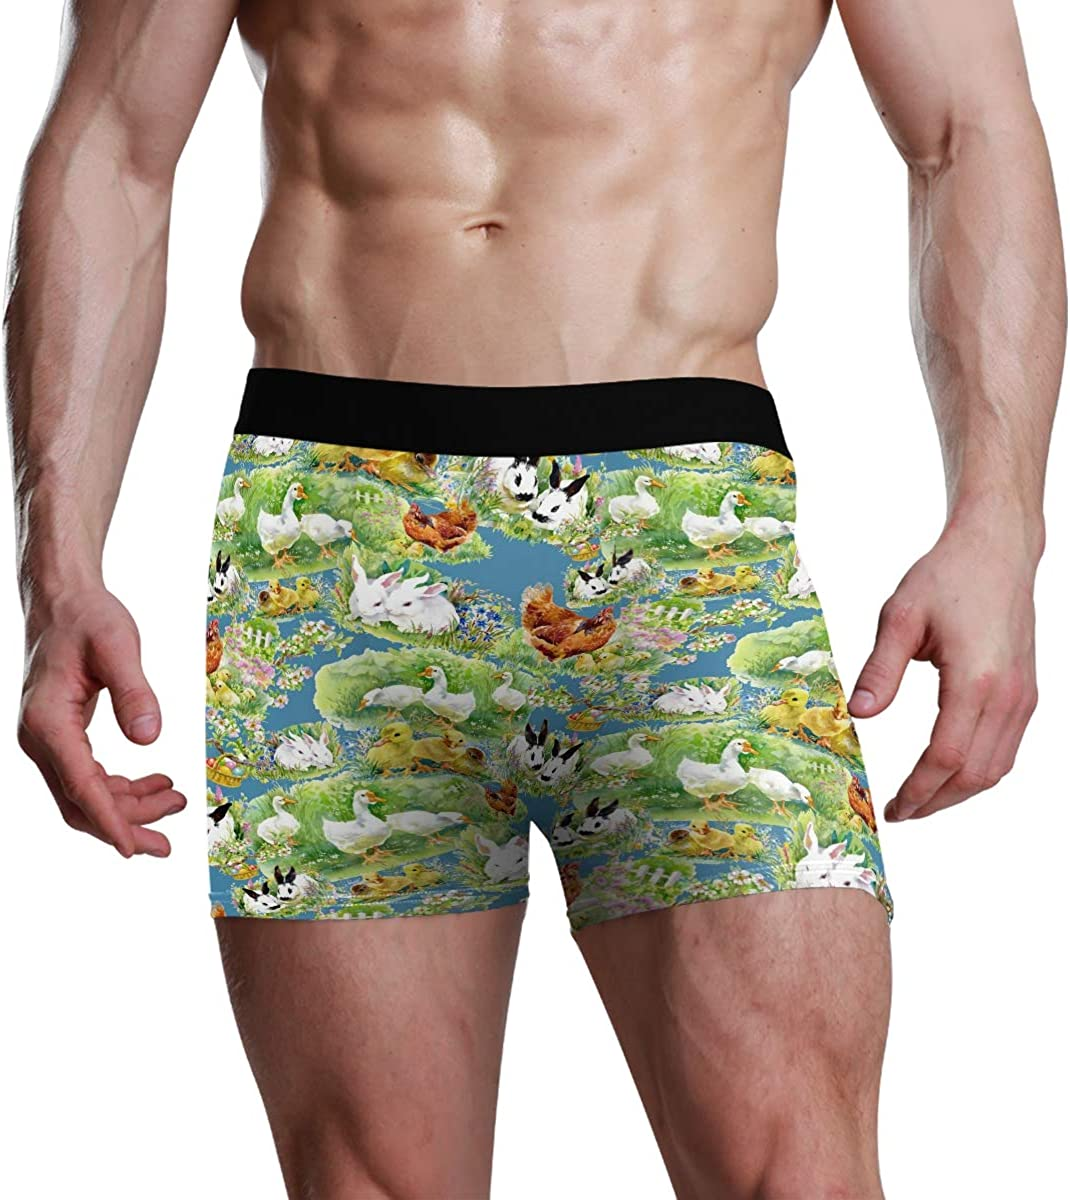 Mens Boxer Briefs Cute Watercolor Ducklings Rooster Bunny Animal Low Rise Trunks Underwear Breathable Bikini Boys